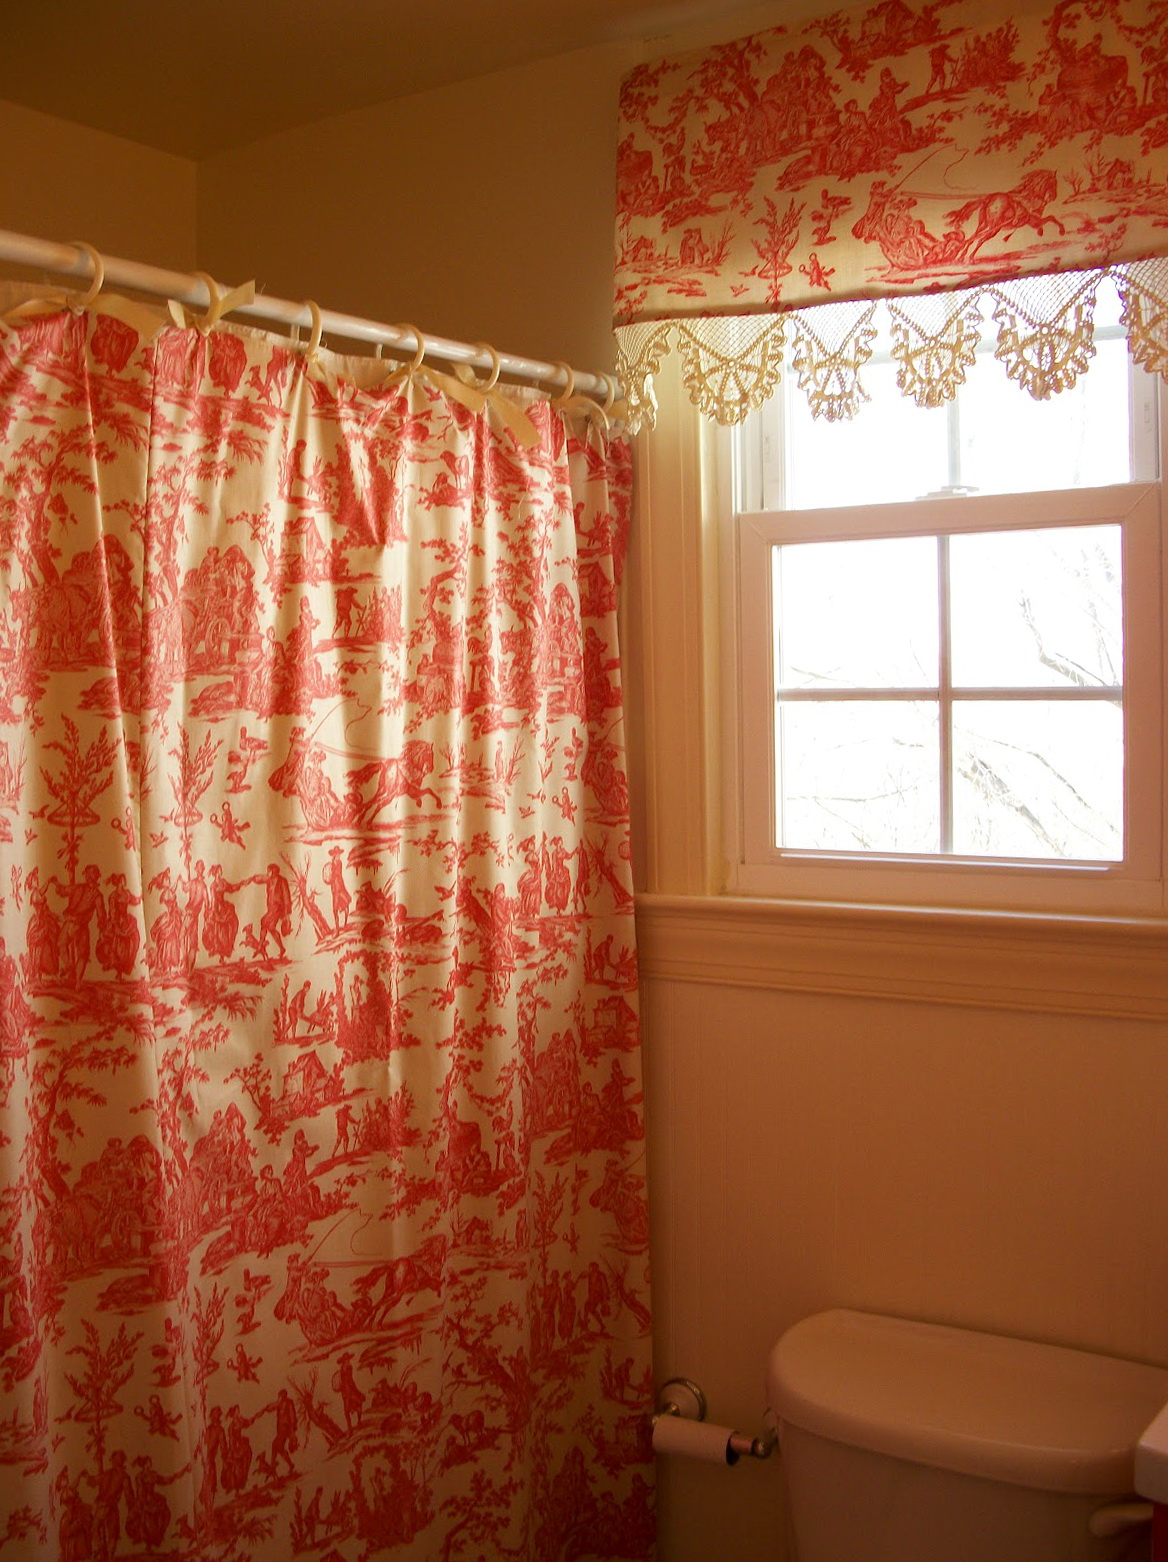 Shower Curtains With Matching Window Curtains And Valances  Home Design Ideas